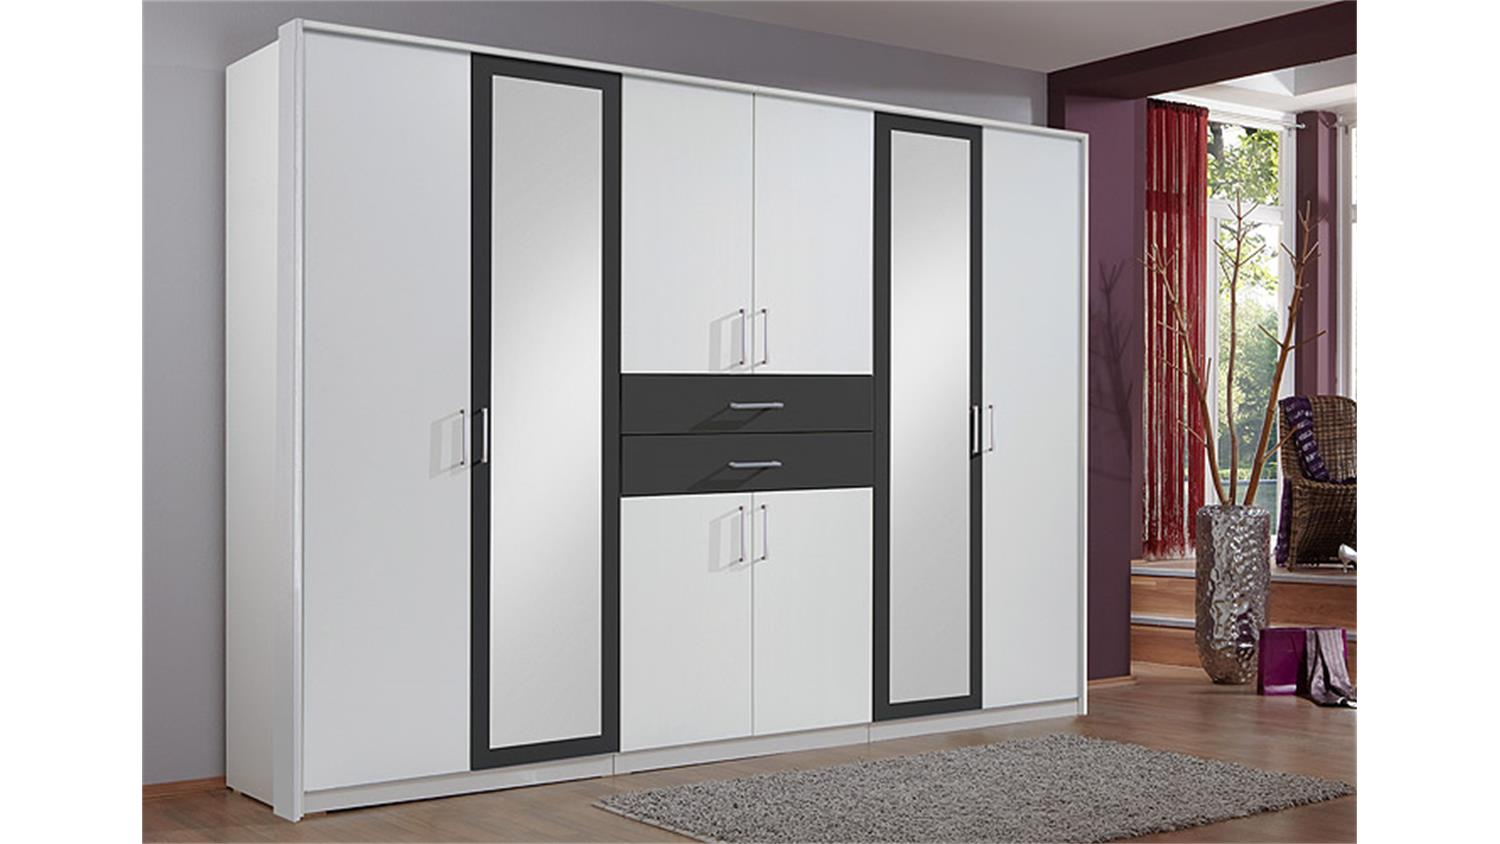 kleiderschrank 270 cm breit kleiderschrank gamma wei nussbaum spiegel 270 cm kleiderschrank. Black Bedroom Furniture Sets. Home Design Ideas